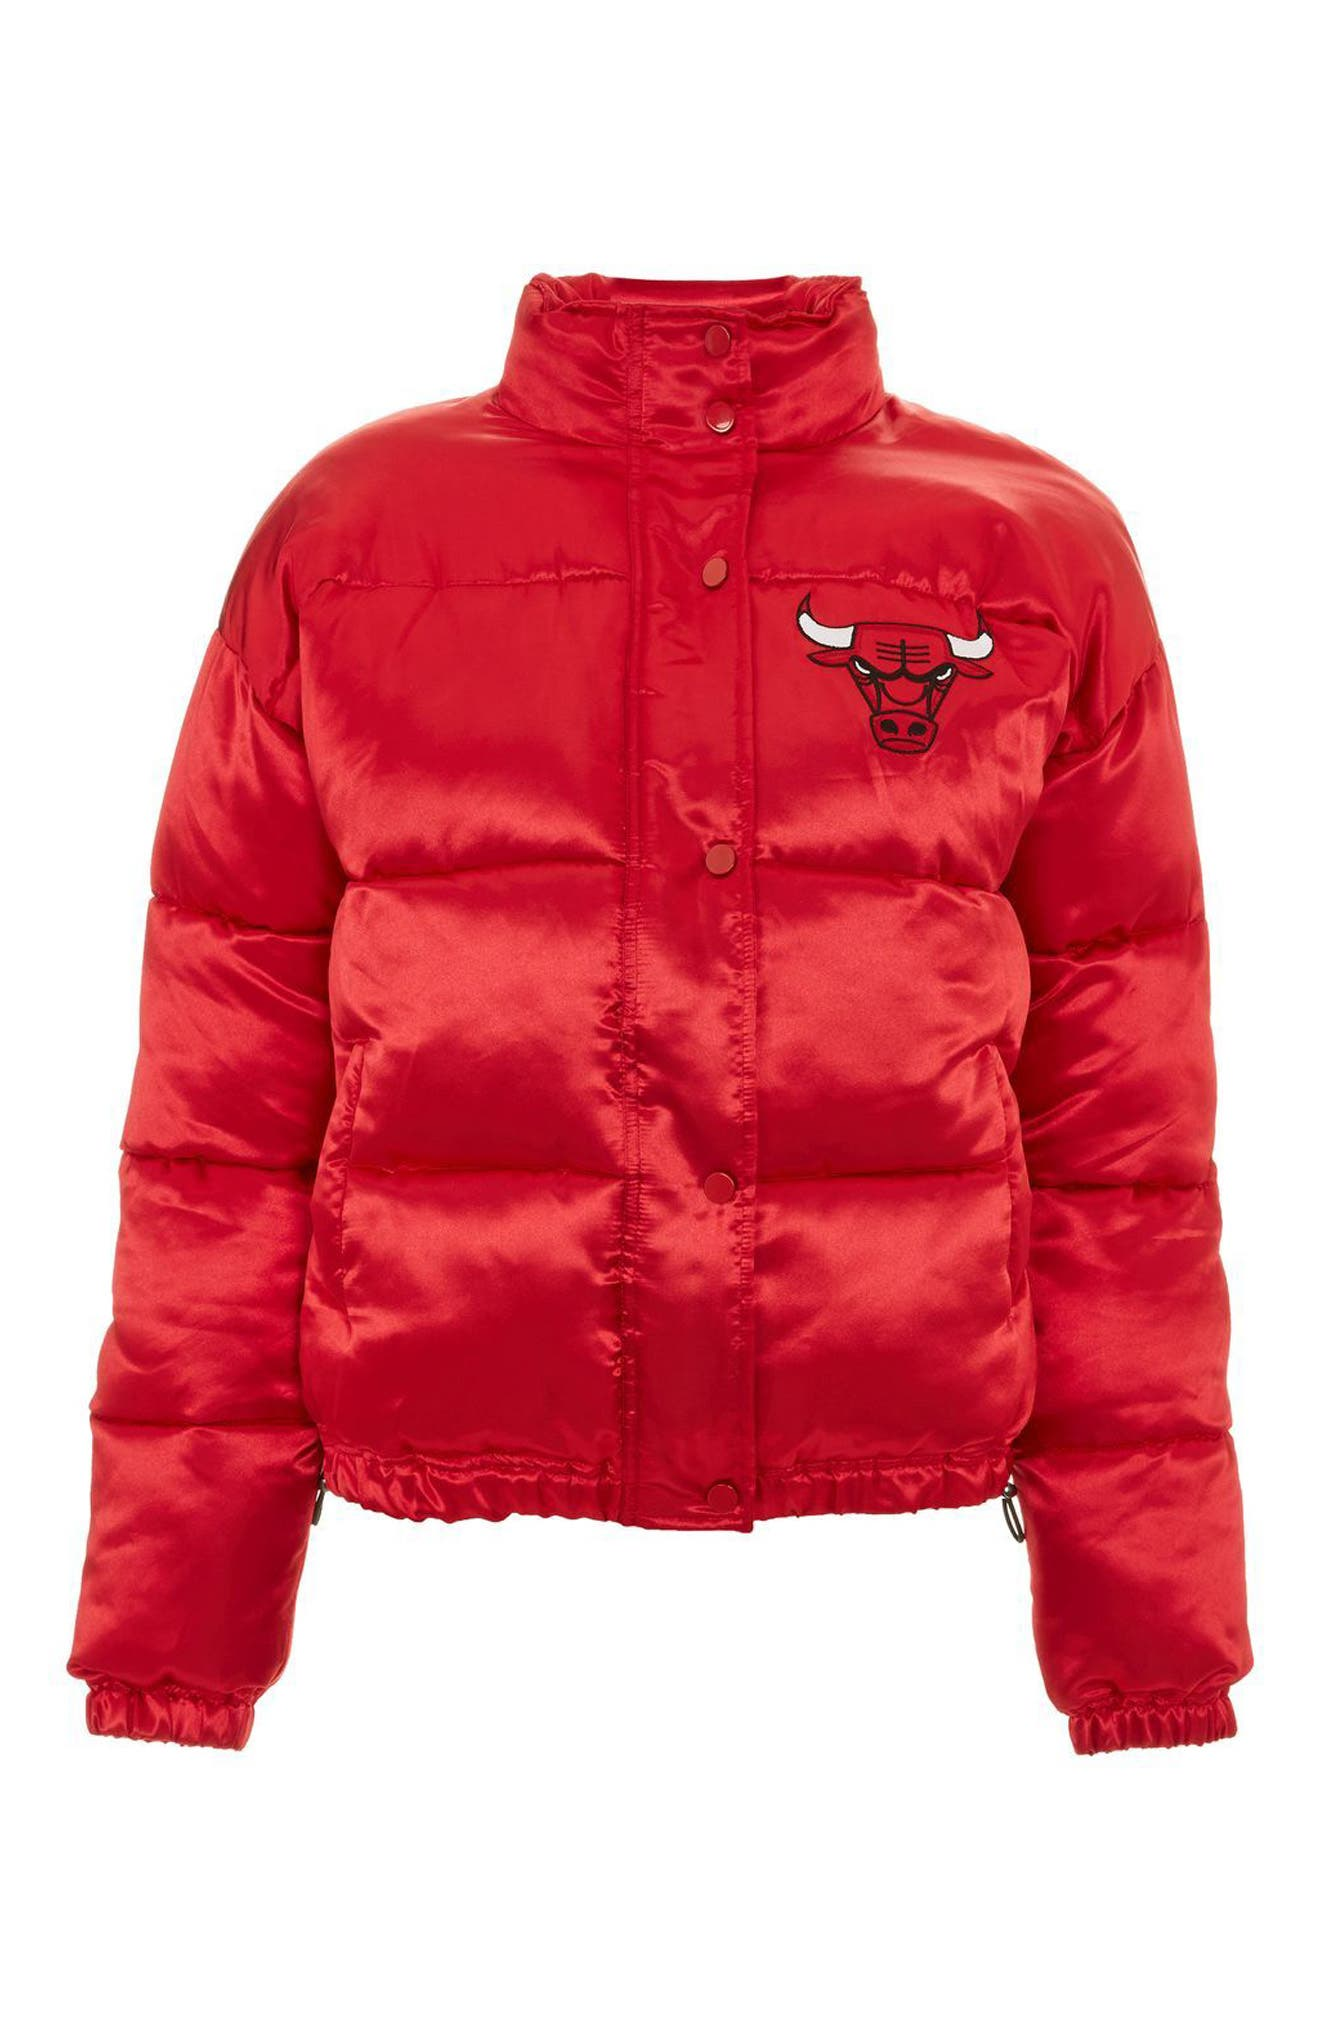 Main Image - Topshop x UNK Chicago Bulls Puffer Jacket